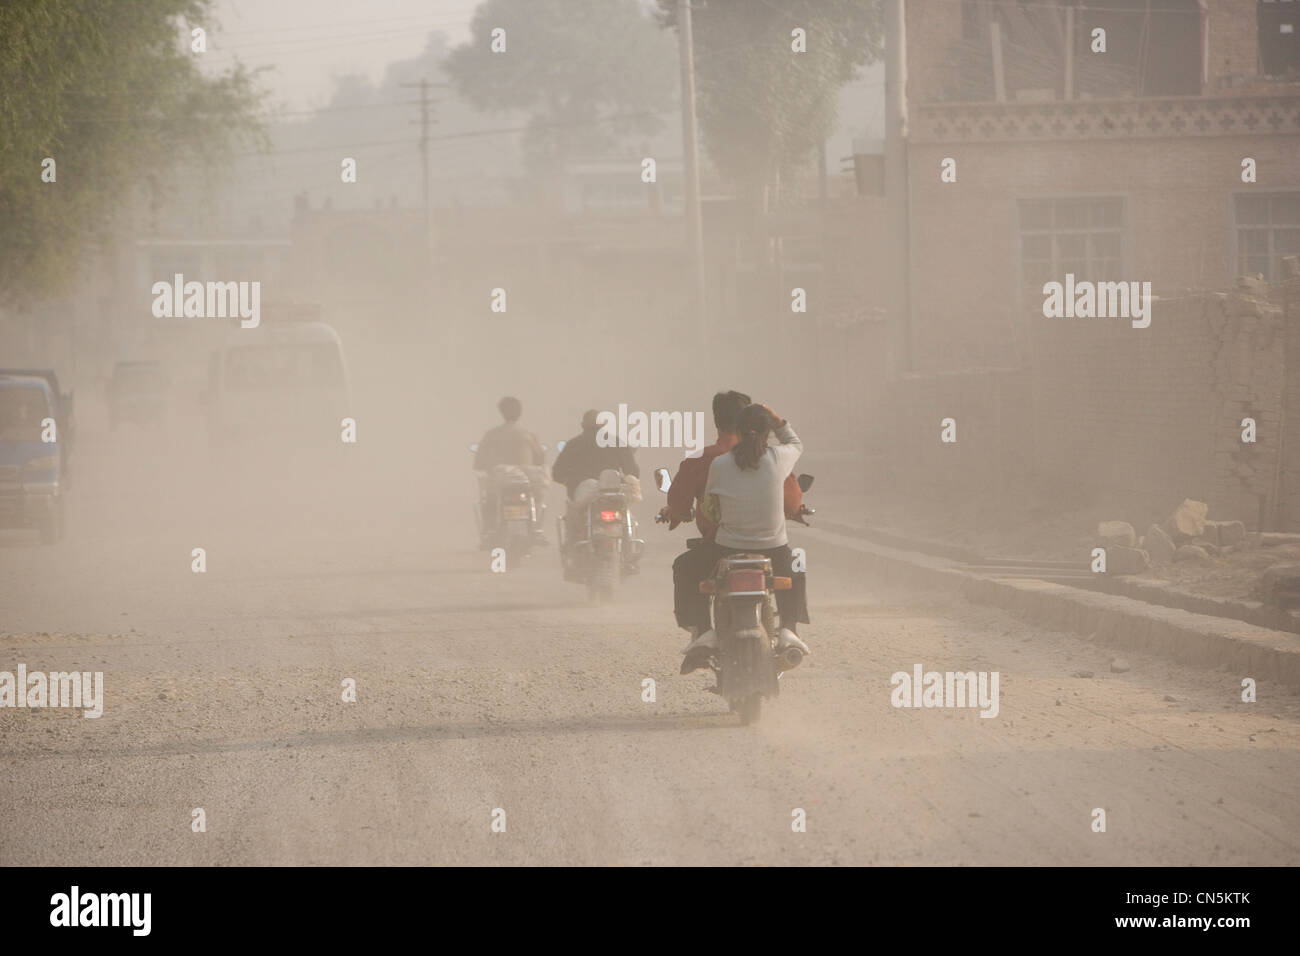 LINXIAN, HENAN PROVINCE, CHINA - JUNE 2006: Vehicle traffic throws up dust on a road under repair. - Stock Image